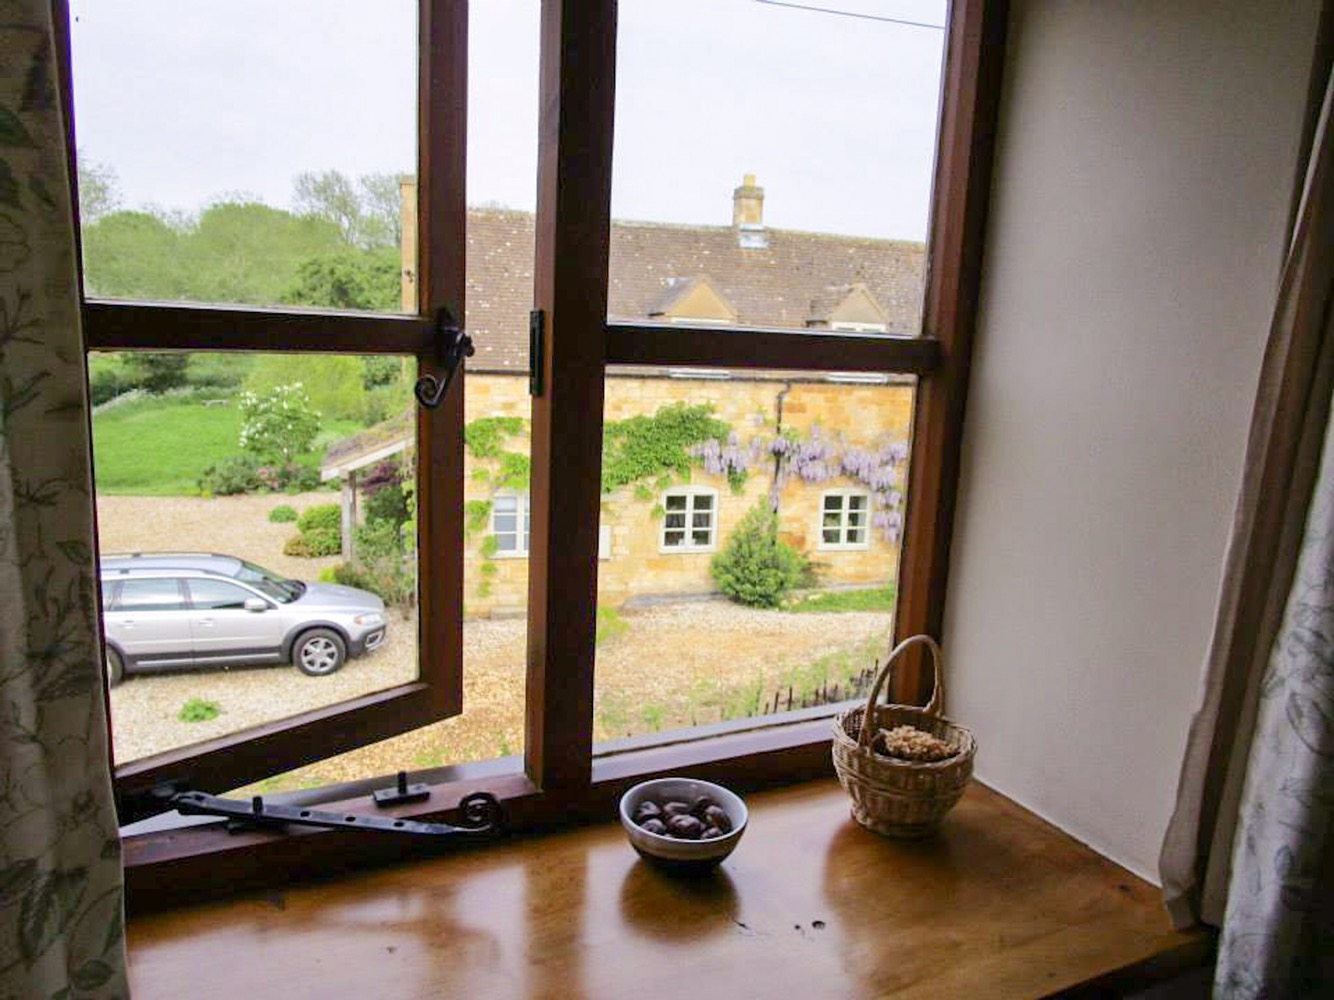 View from our room at Bran Mill cottage